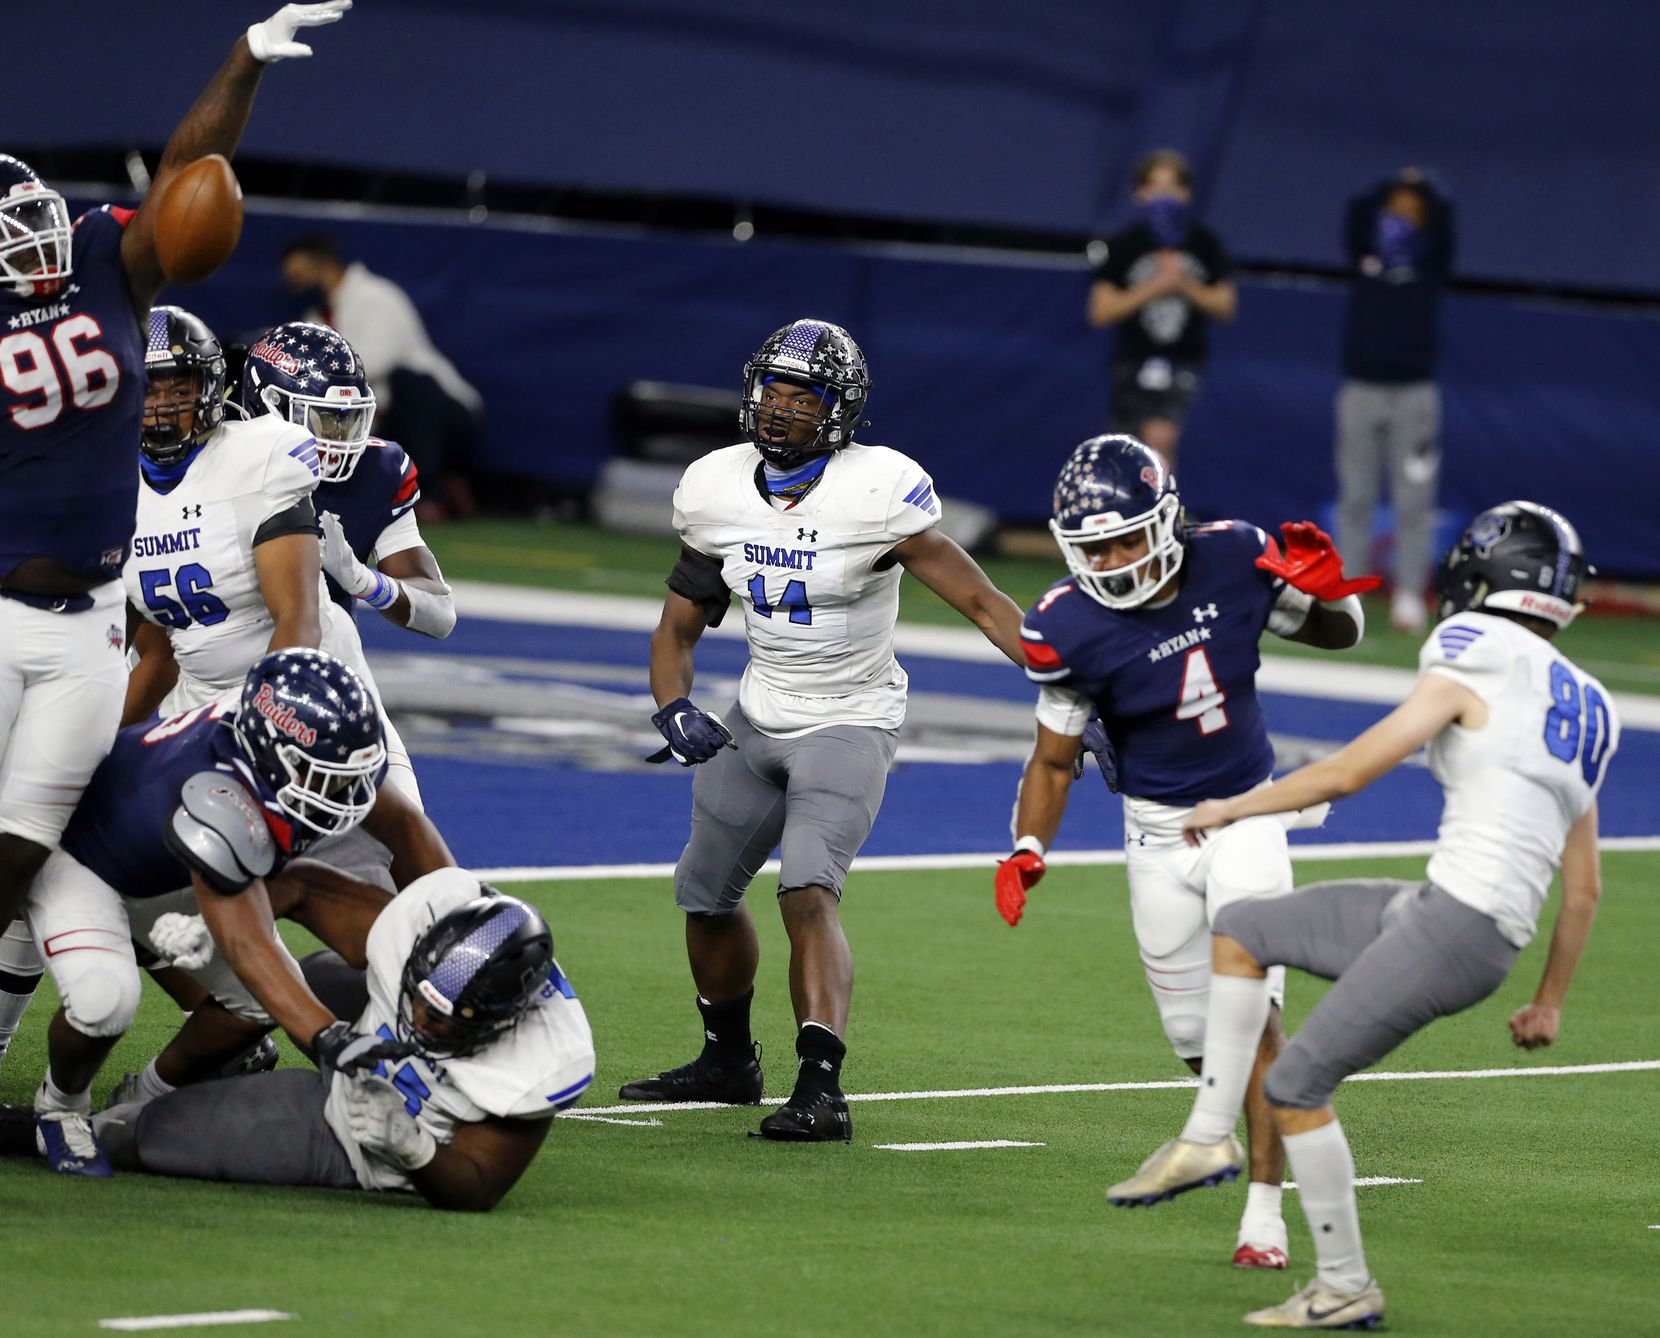 Mansfield Summit kicker Keaton Foster (80) tries to kick an extra point, but it is blocked by Denton Ryan during the first half of the Class 5A Division I state semifinal football playoff game at AT&T Stadium in Arlington on Friday, January 8, 2021. (John F. Rhodes / Special Contributor)